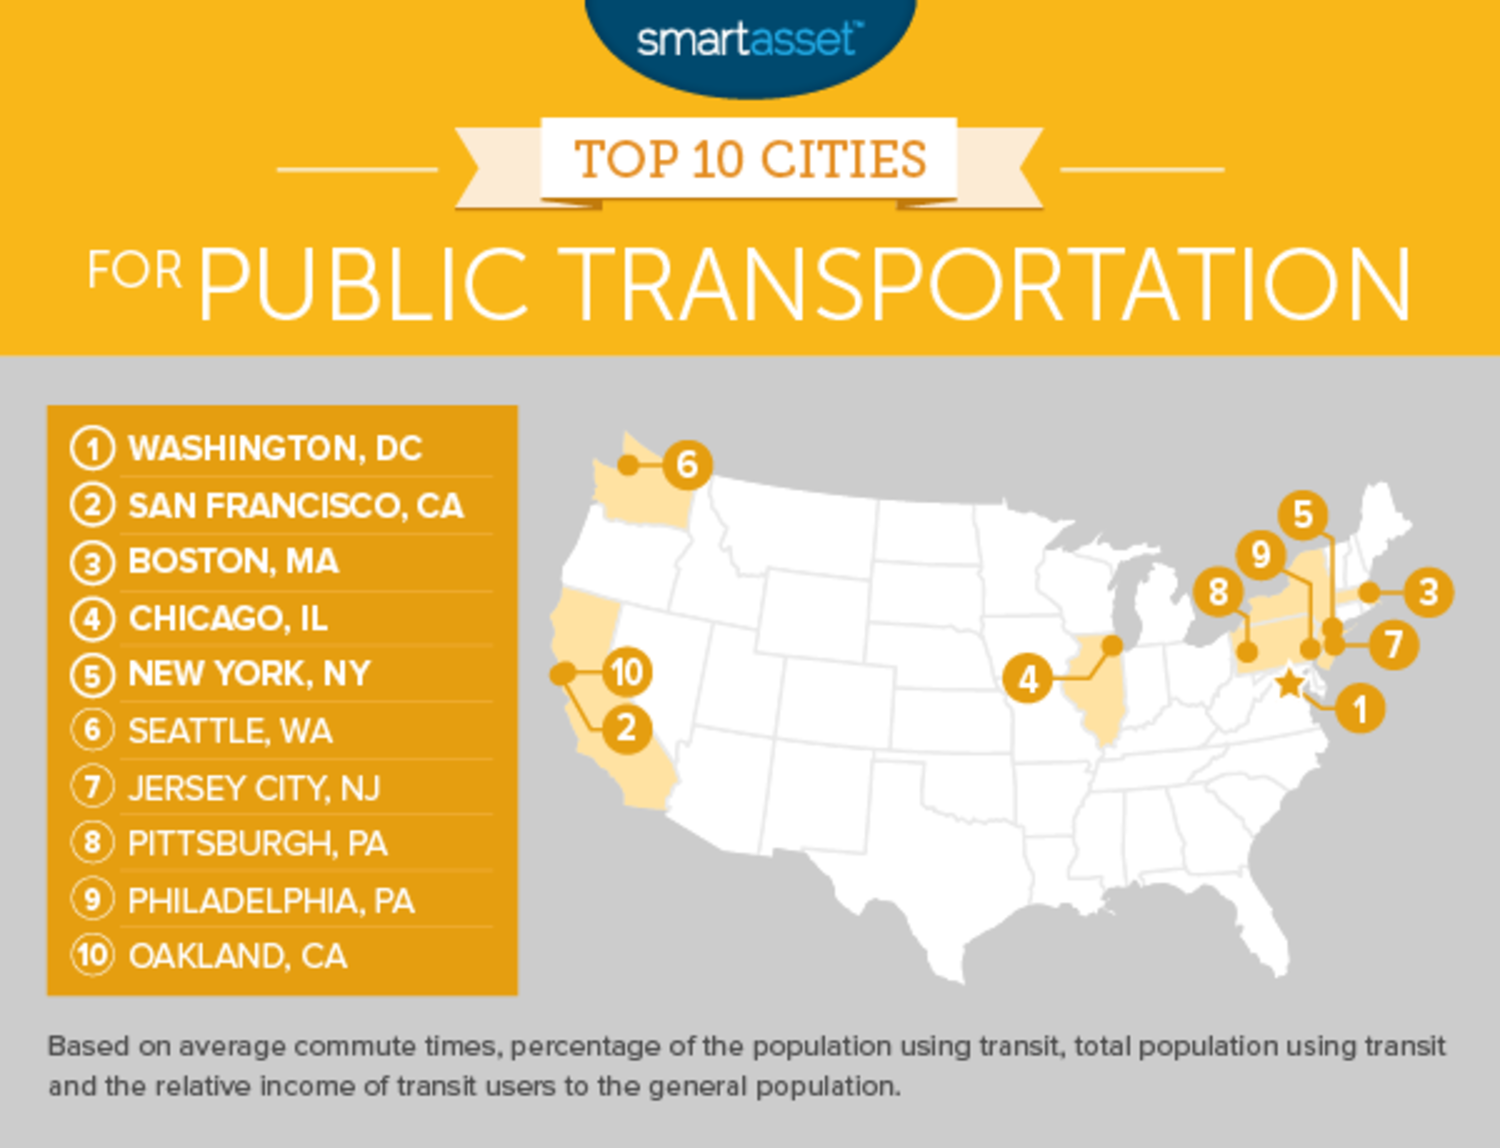 The Best Cities for Public Transportation